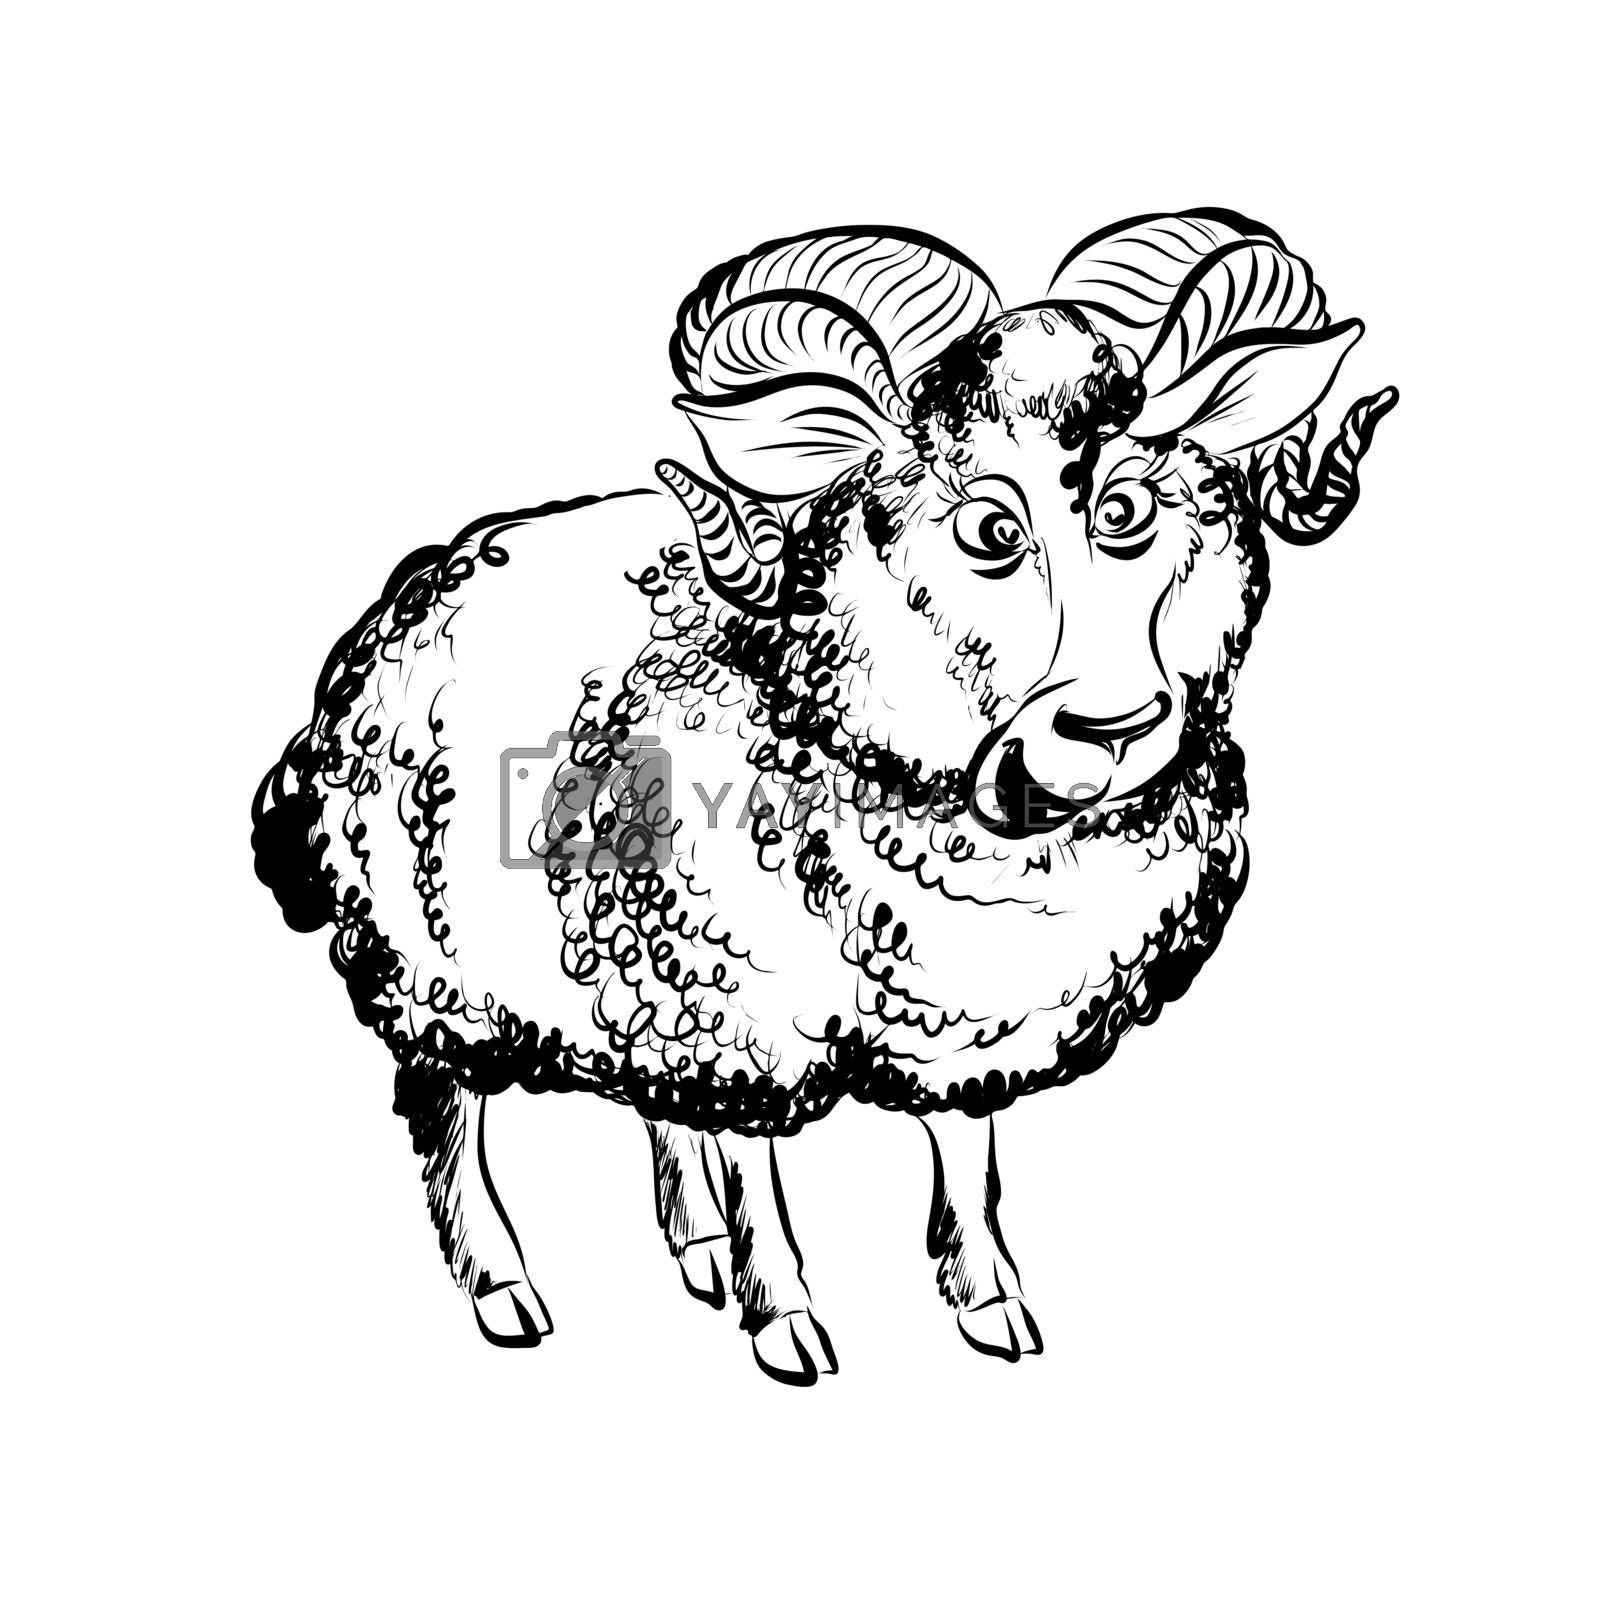 Hand Drawn Sketch of Cartoon Funny Lamb Character. Illustration on White Background